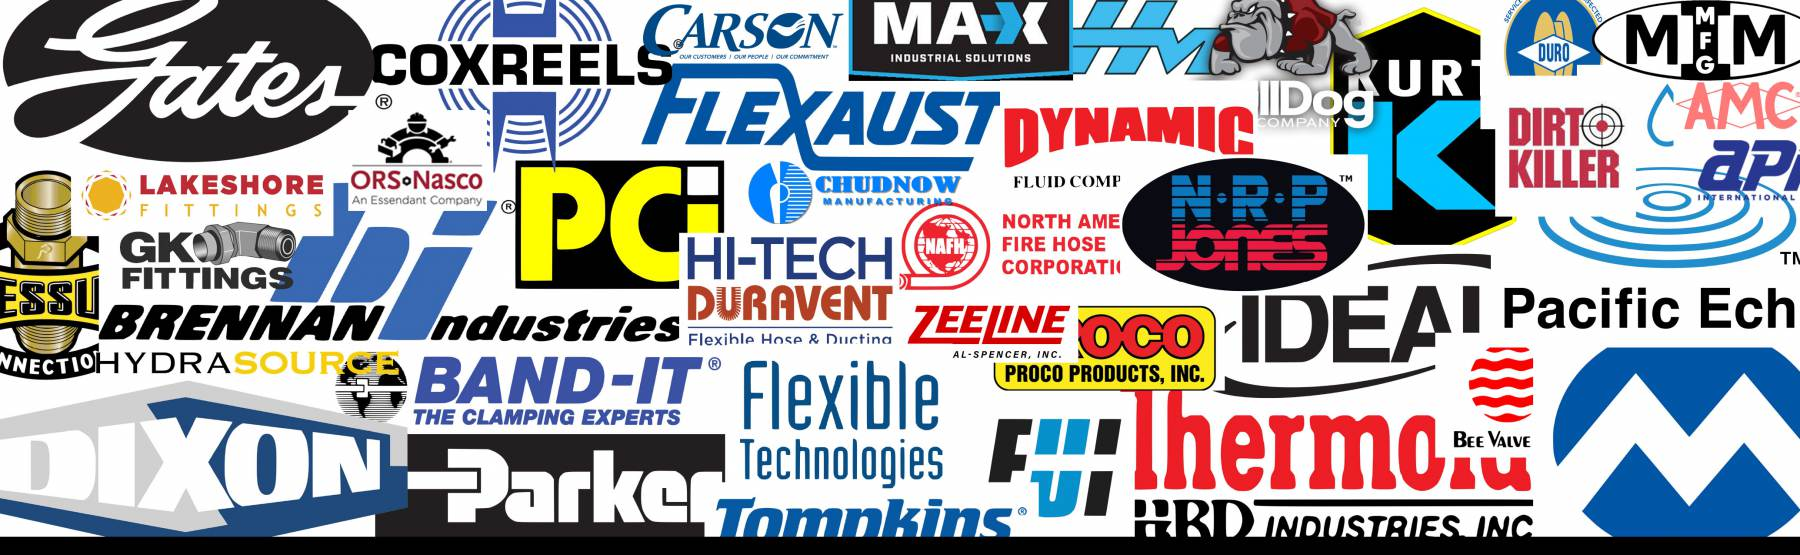 brands collage